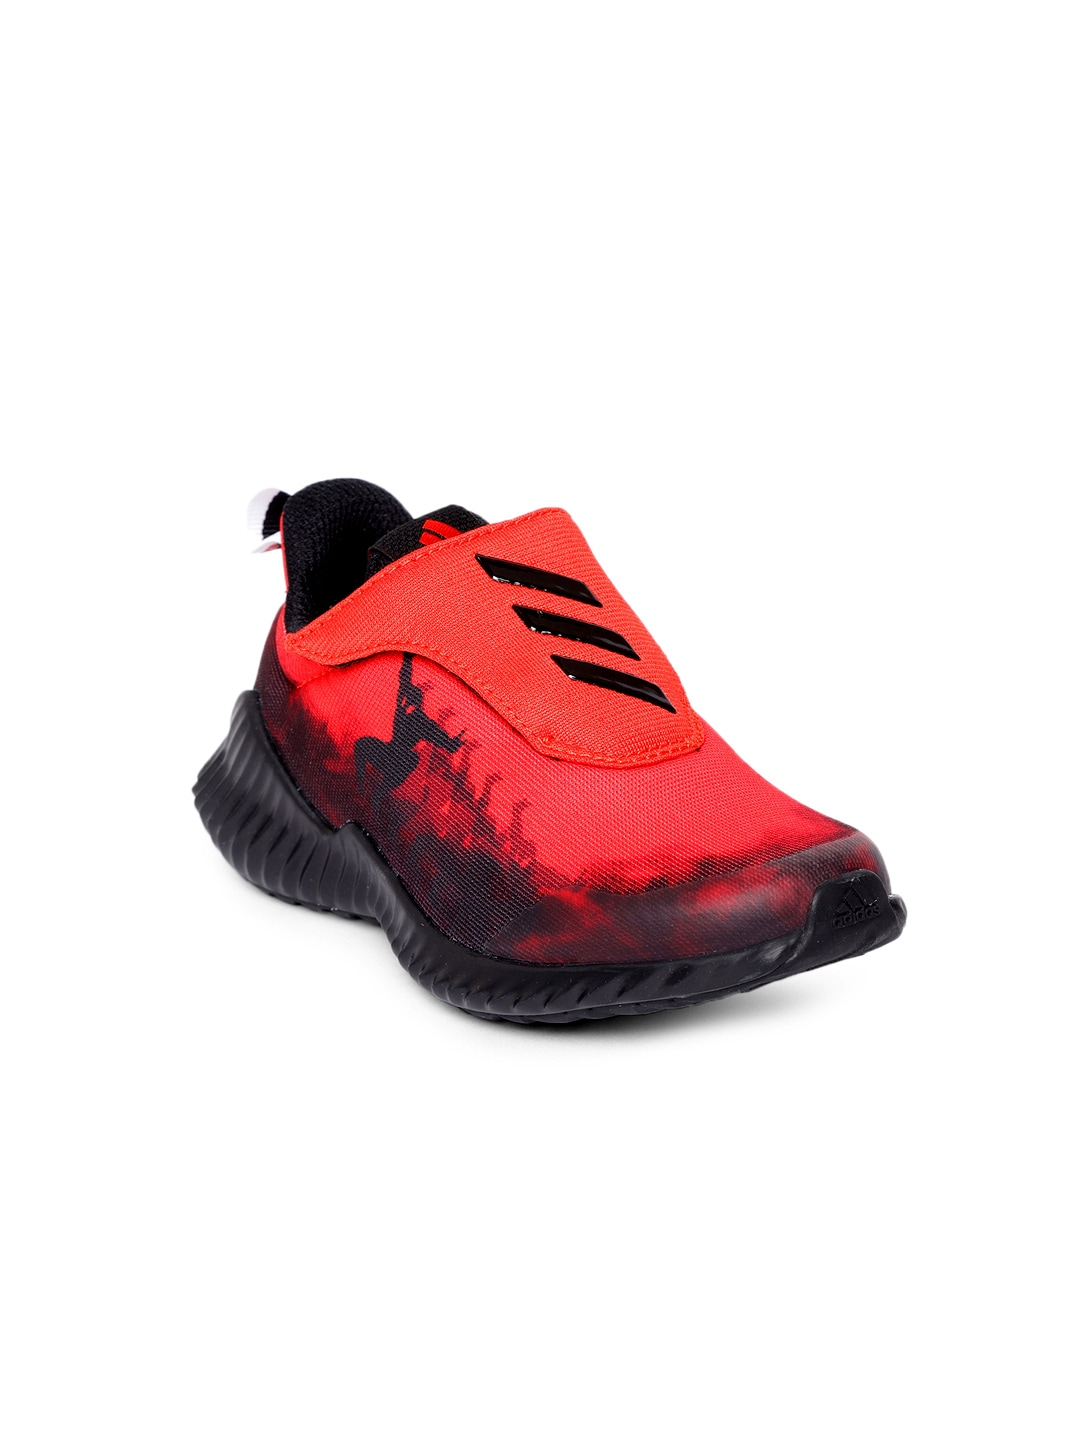 8a3cdaeecb6f0 adidas - Exclusive adidas Online Store in India at Myntra